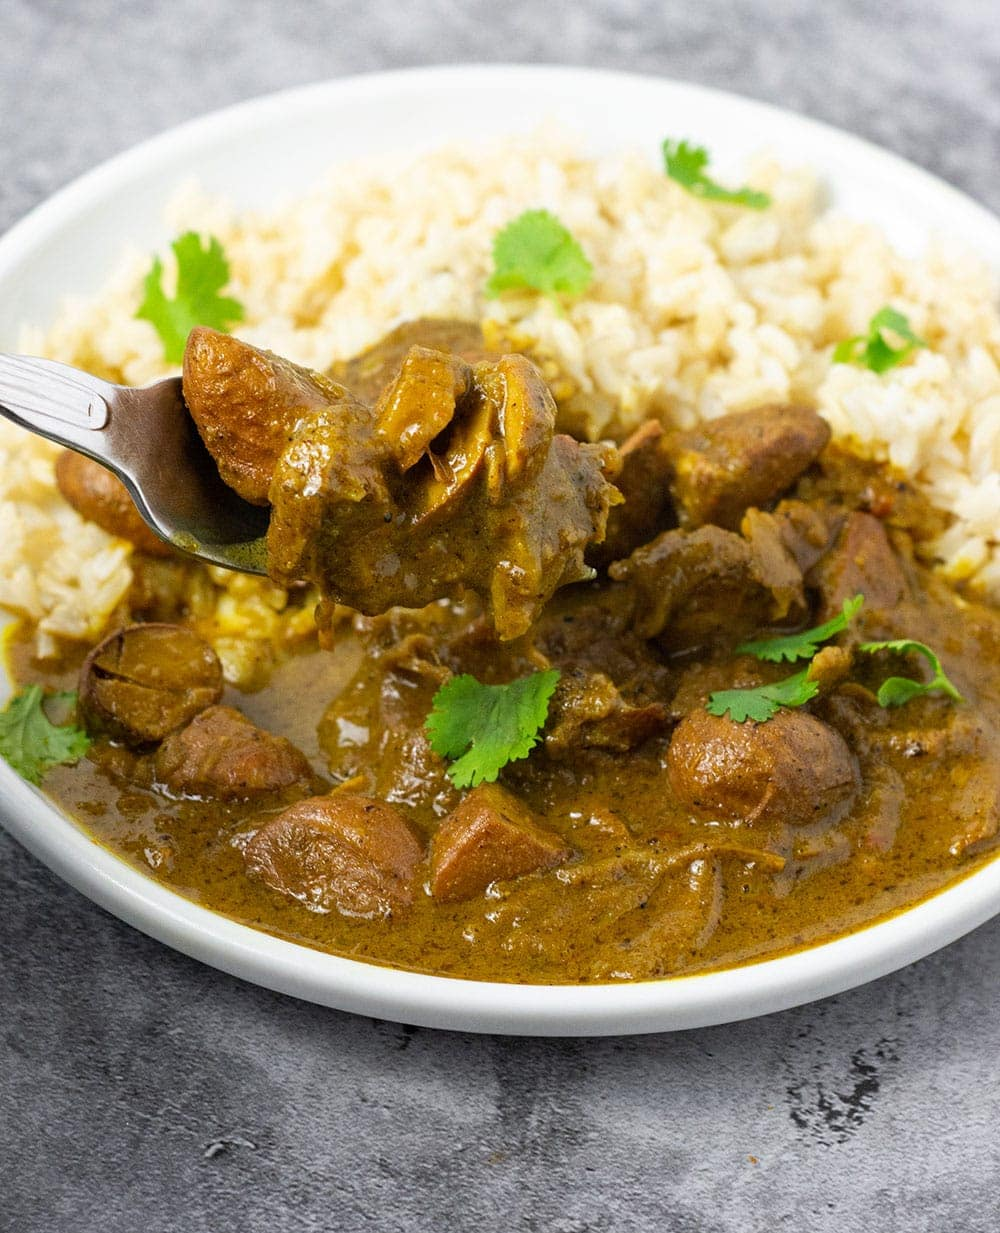 Chataigne (bread nut) curry on a white plate with rice and garnished with cilantro leaves on a grey background